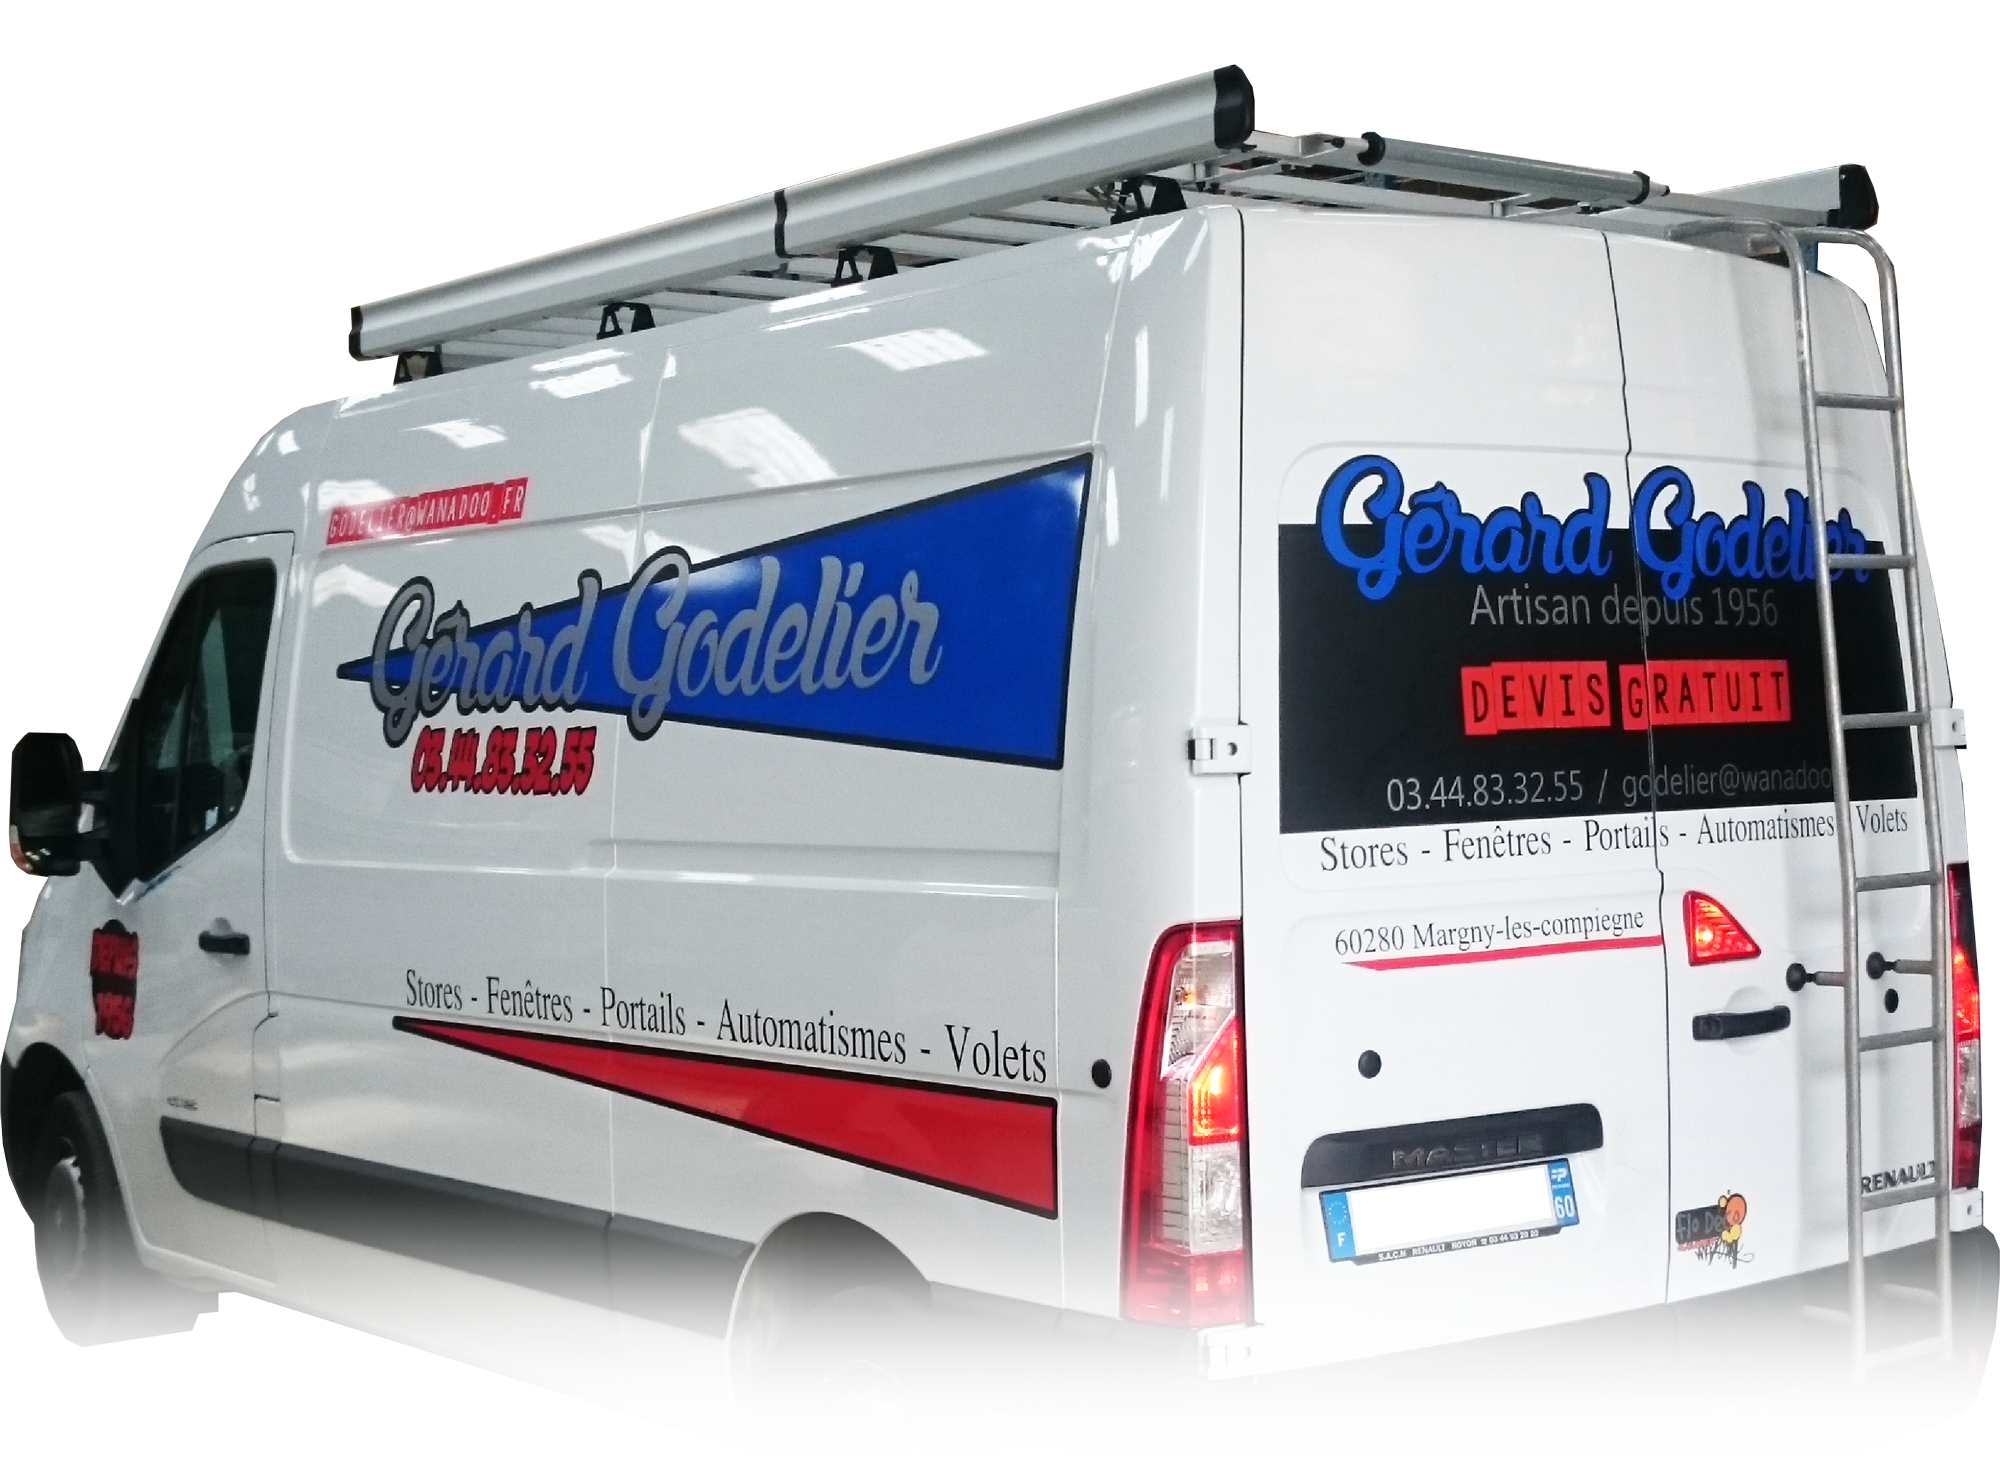 camion godelier